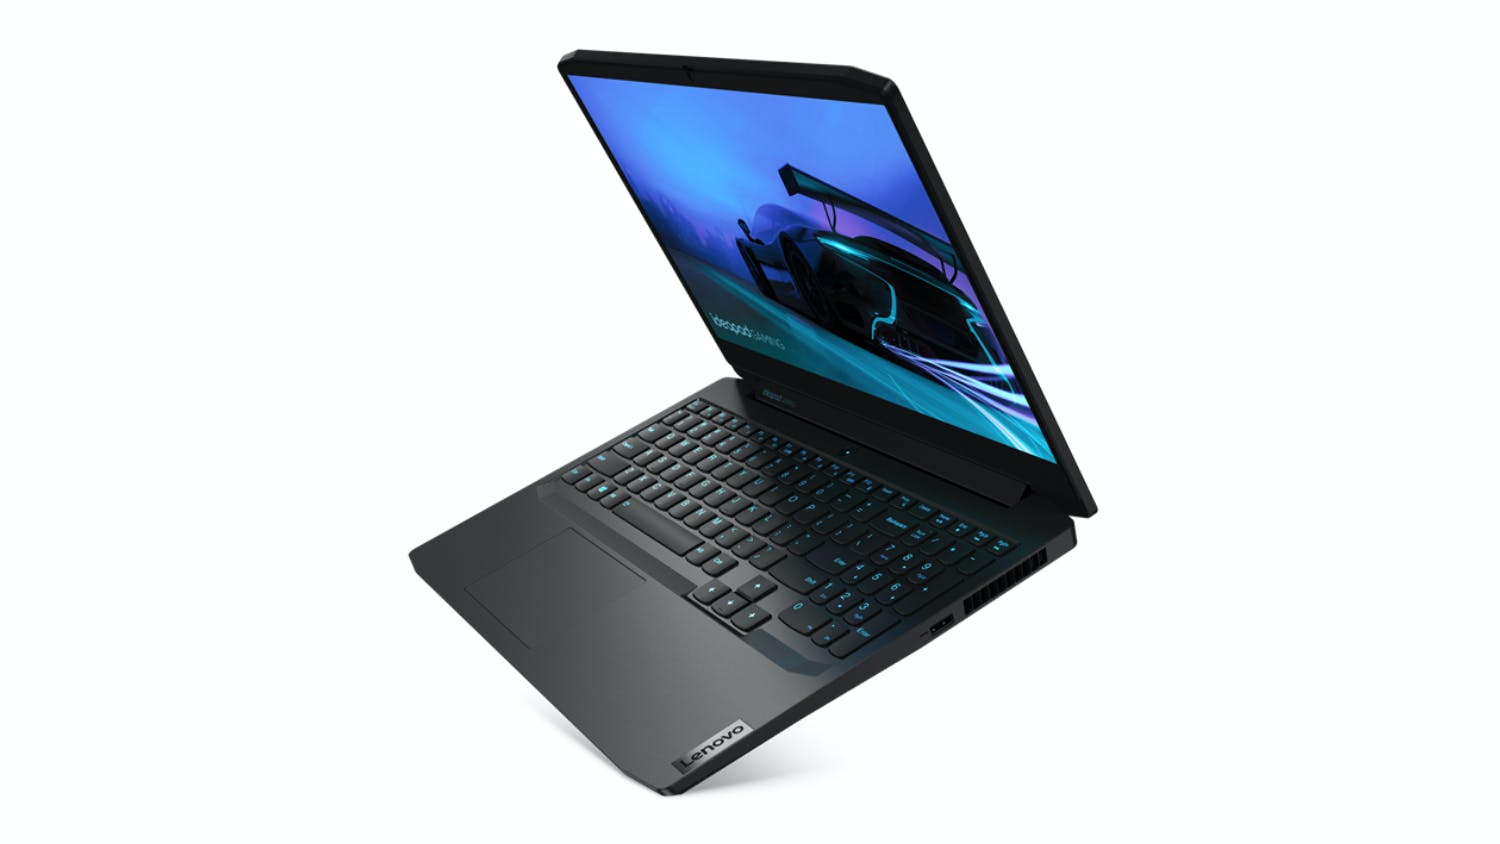 Lenovo IdeaPad Gaming 3 i7 512GLenovo IdeaPad Gaming 3 i7 512GB 15.6